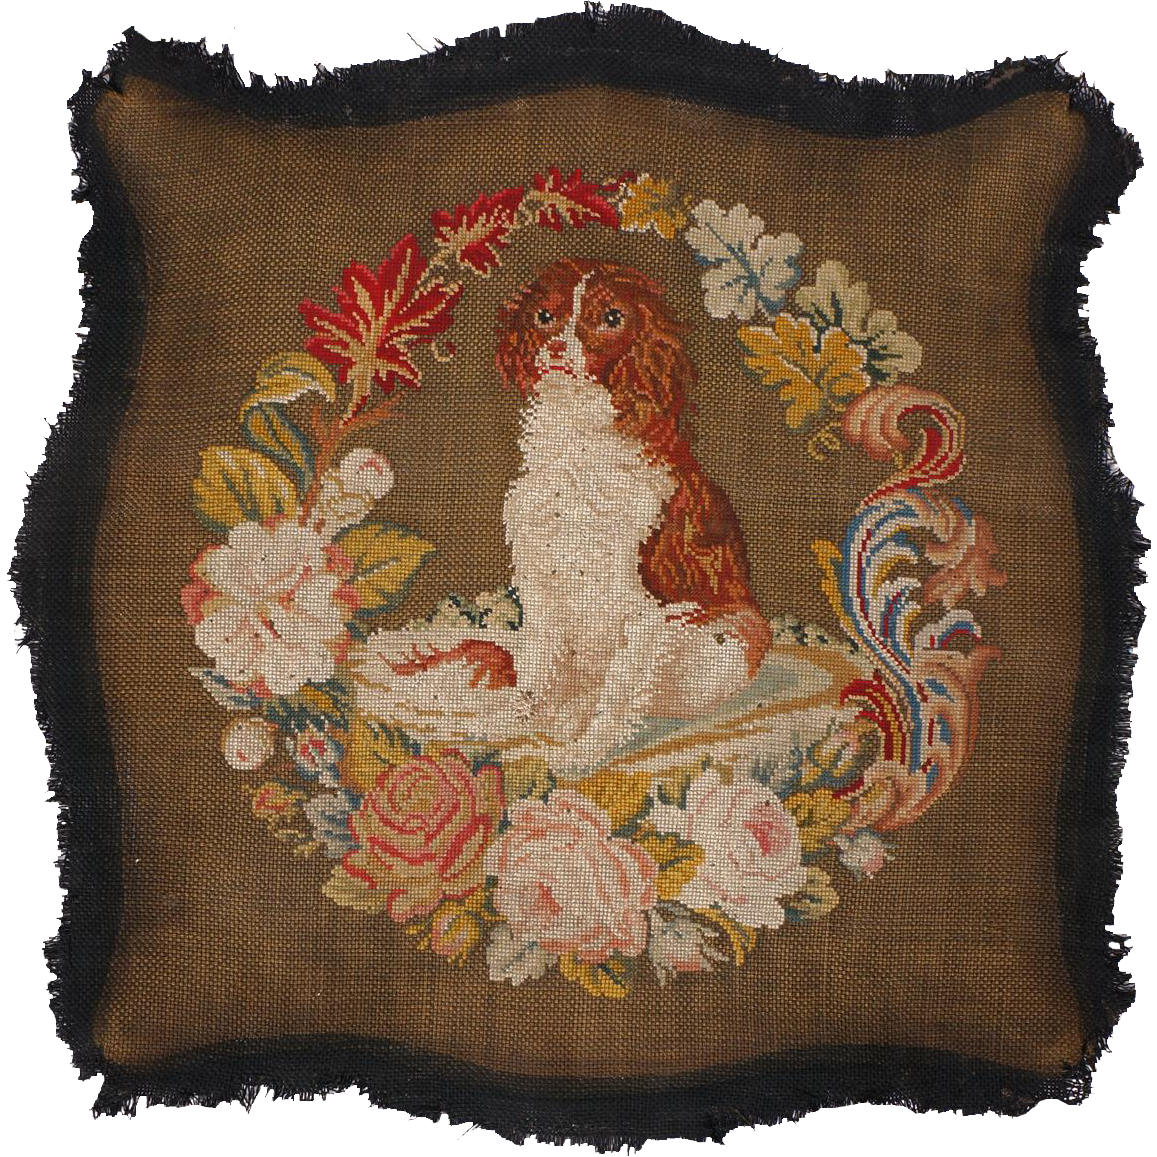 Antique Dog Needlepoint Chair Seat Cover Cavalier King Charles Spaniel Large - Antique Dog Needlepoint Chair Seat Cover Cavalier King Charles